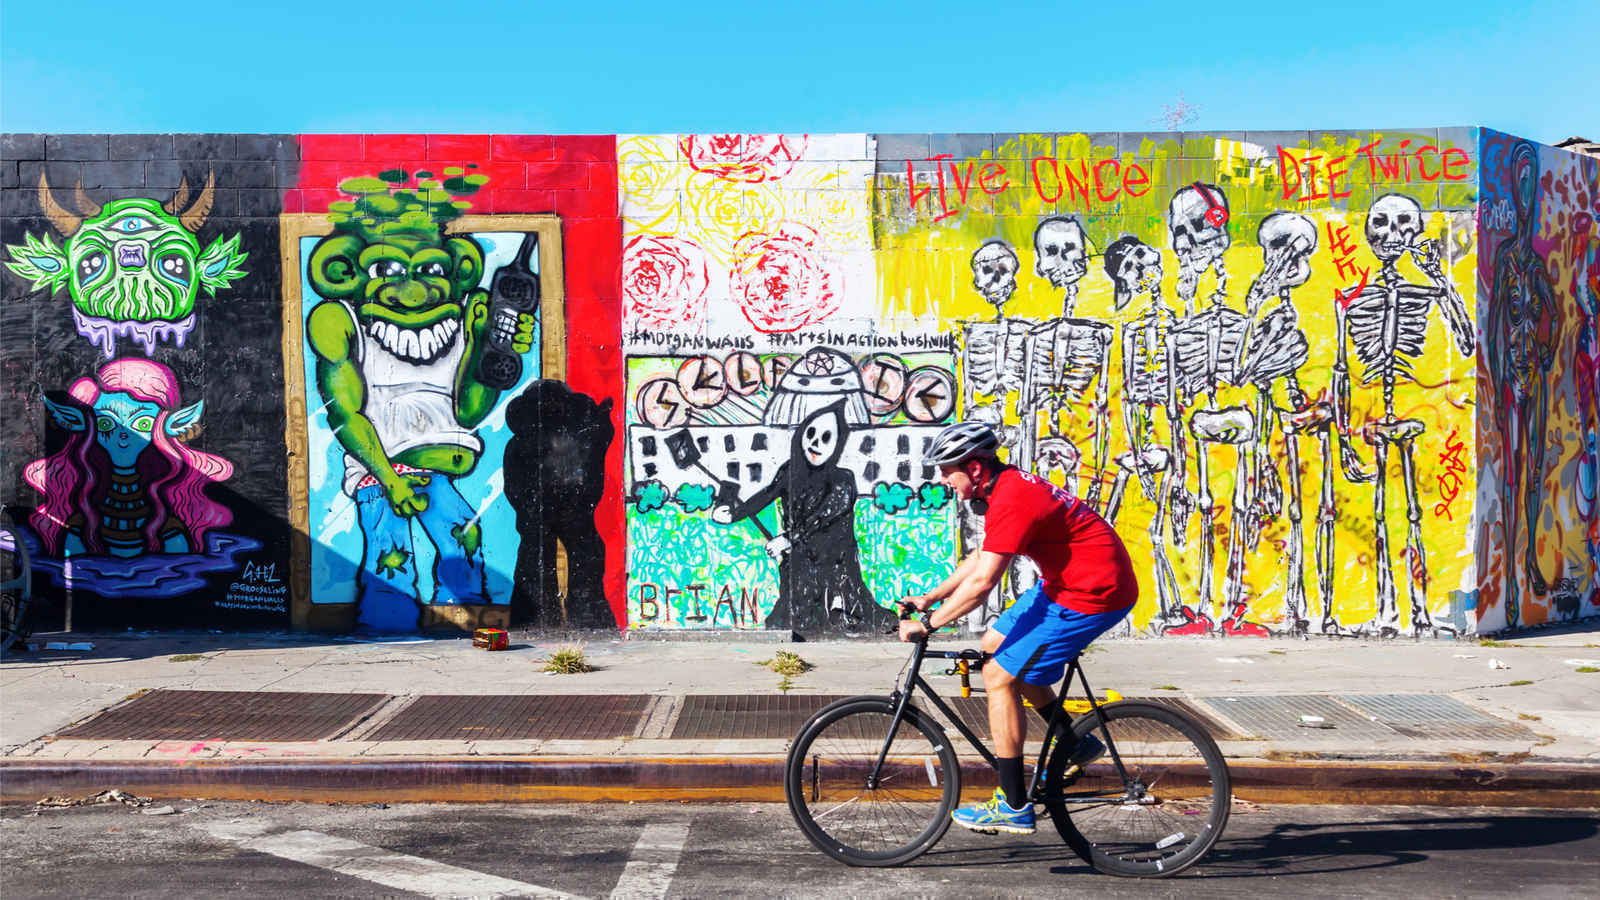 Man riding bike past graffiti art mural in Bushwick Brooklyn